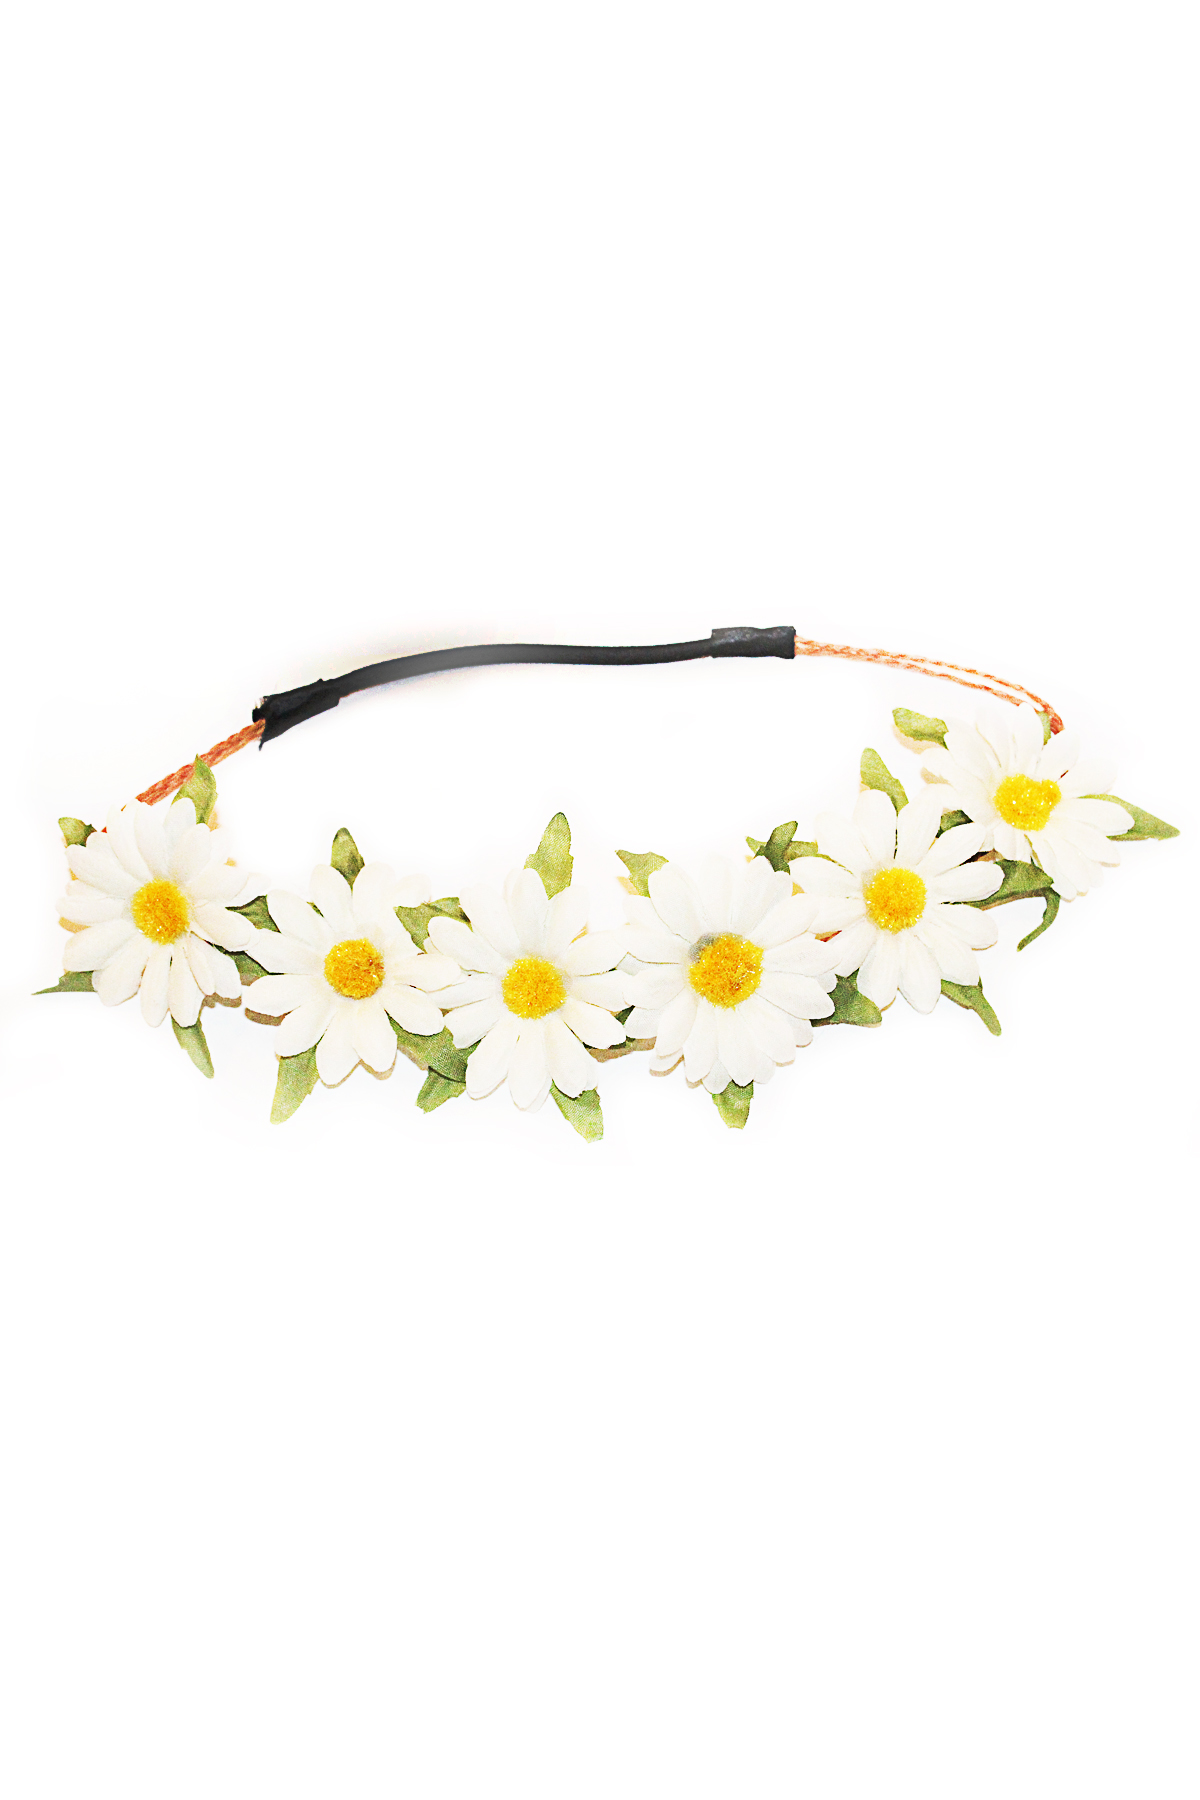 Transparent Flower Crown Crazywidowfo